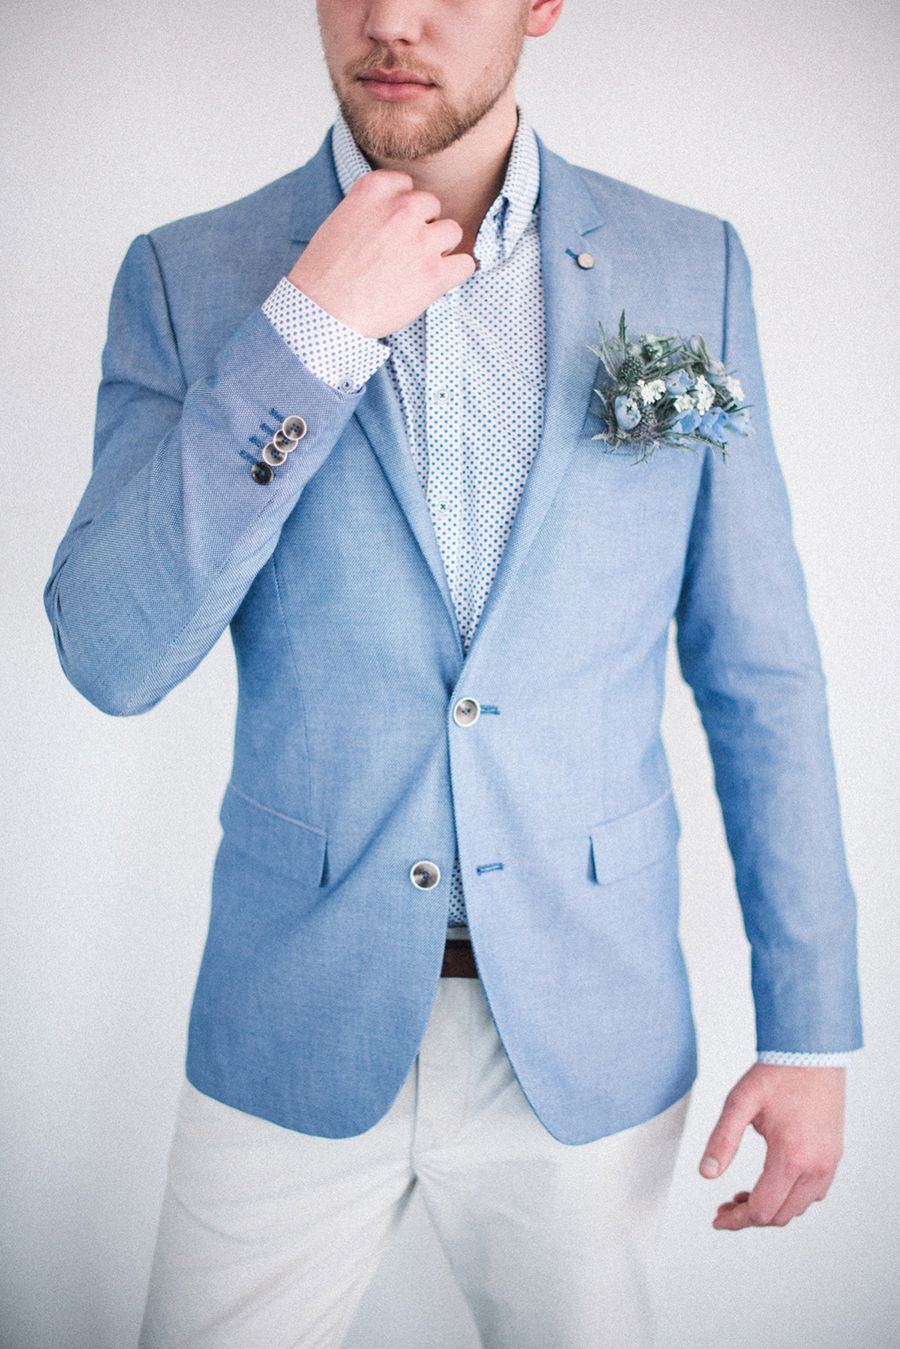 Powder blue groom's suit // Sailing Club Styled Shoot With Hues of Powder Blue